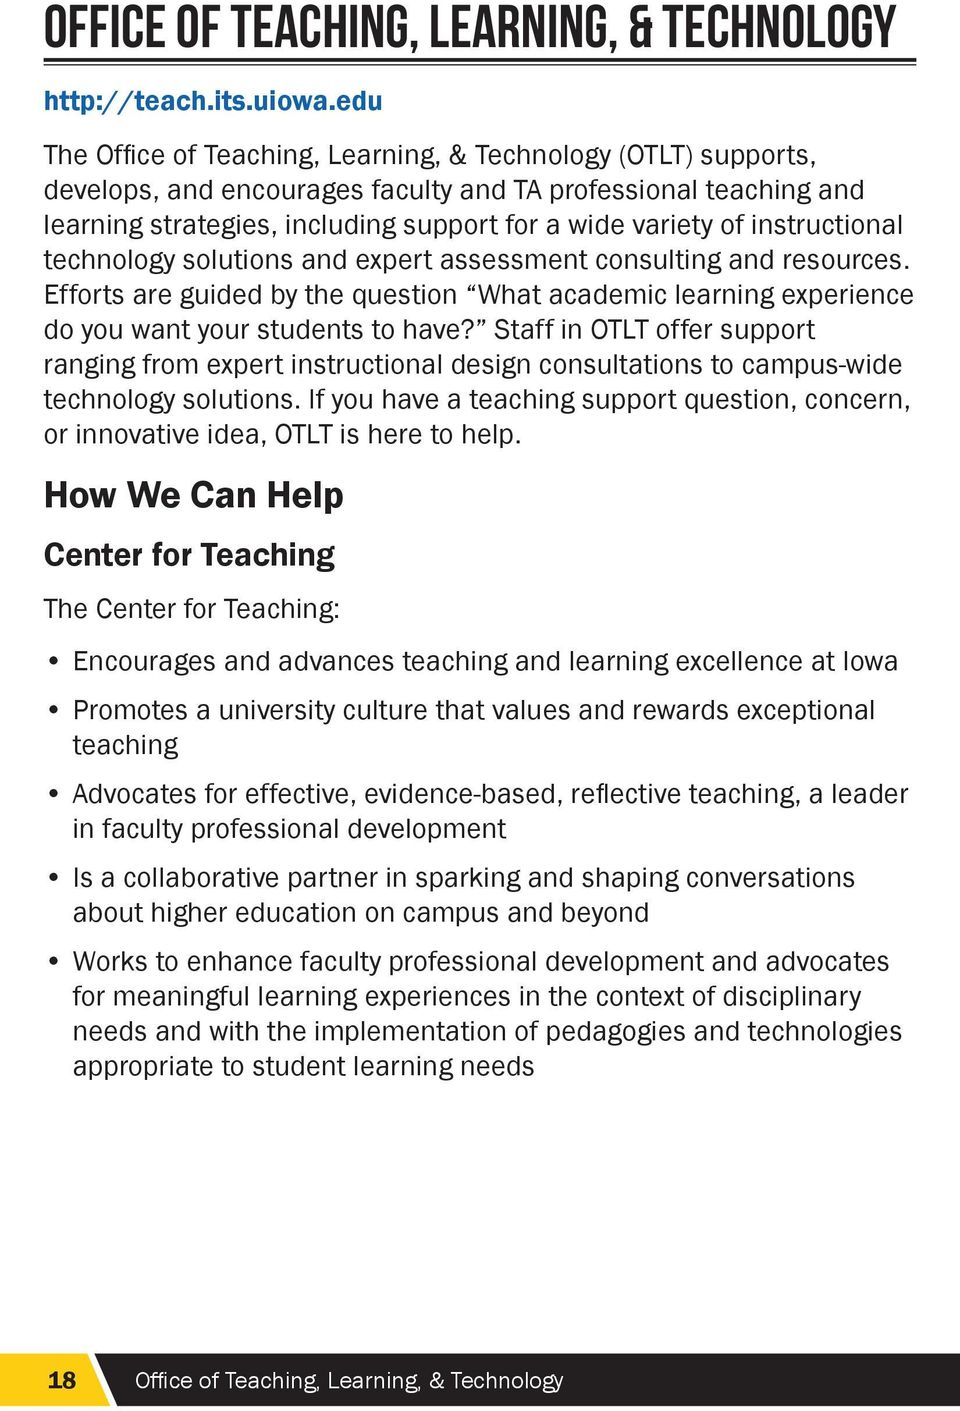 instructional technology solutions and expert assessment consulting and resources. Efforts are guided by the question What academic learning experience do you want your students to have?